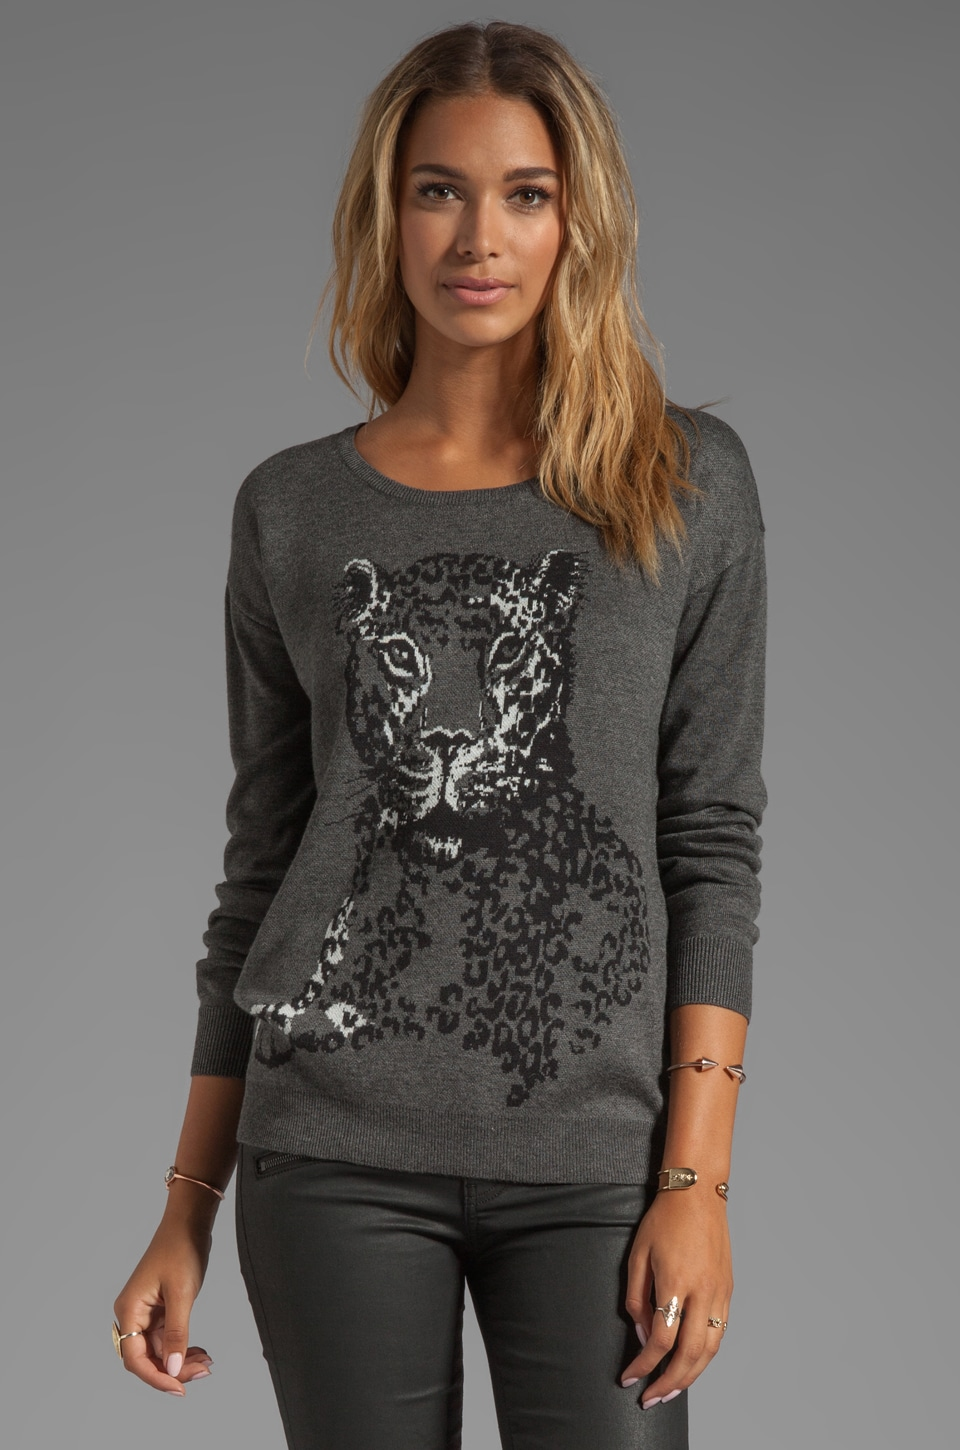 Joie Animal Jacquard Shirlene Sweater in Dark Heather Grey